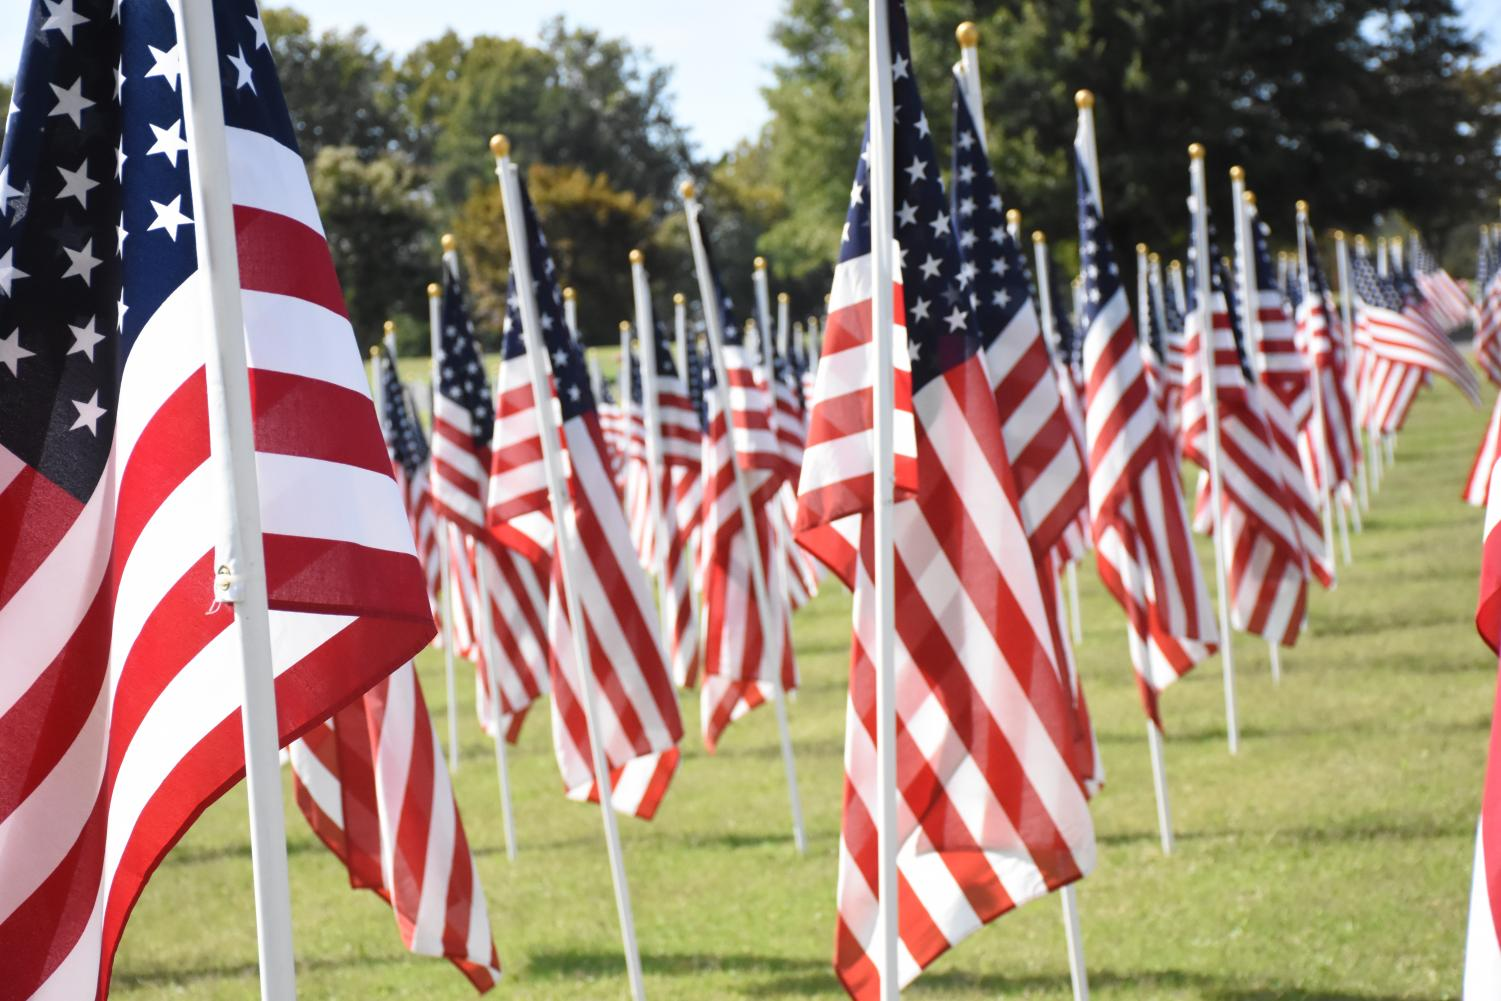 Flags planted to honor the victims of the 9/11 terrorist attacks, at a Healing Field in Huntington's Spring Hill Cemetery. Marshall President Jerry Gilbert will be a guest speaker at a memorial event at the Spring Hill Cemetery Wednesday, Sept. 11.